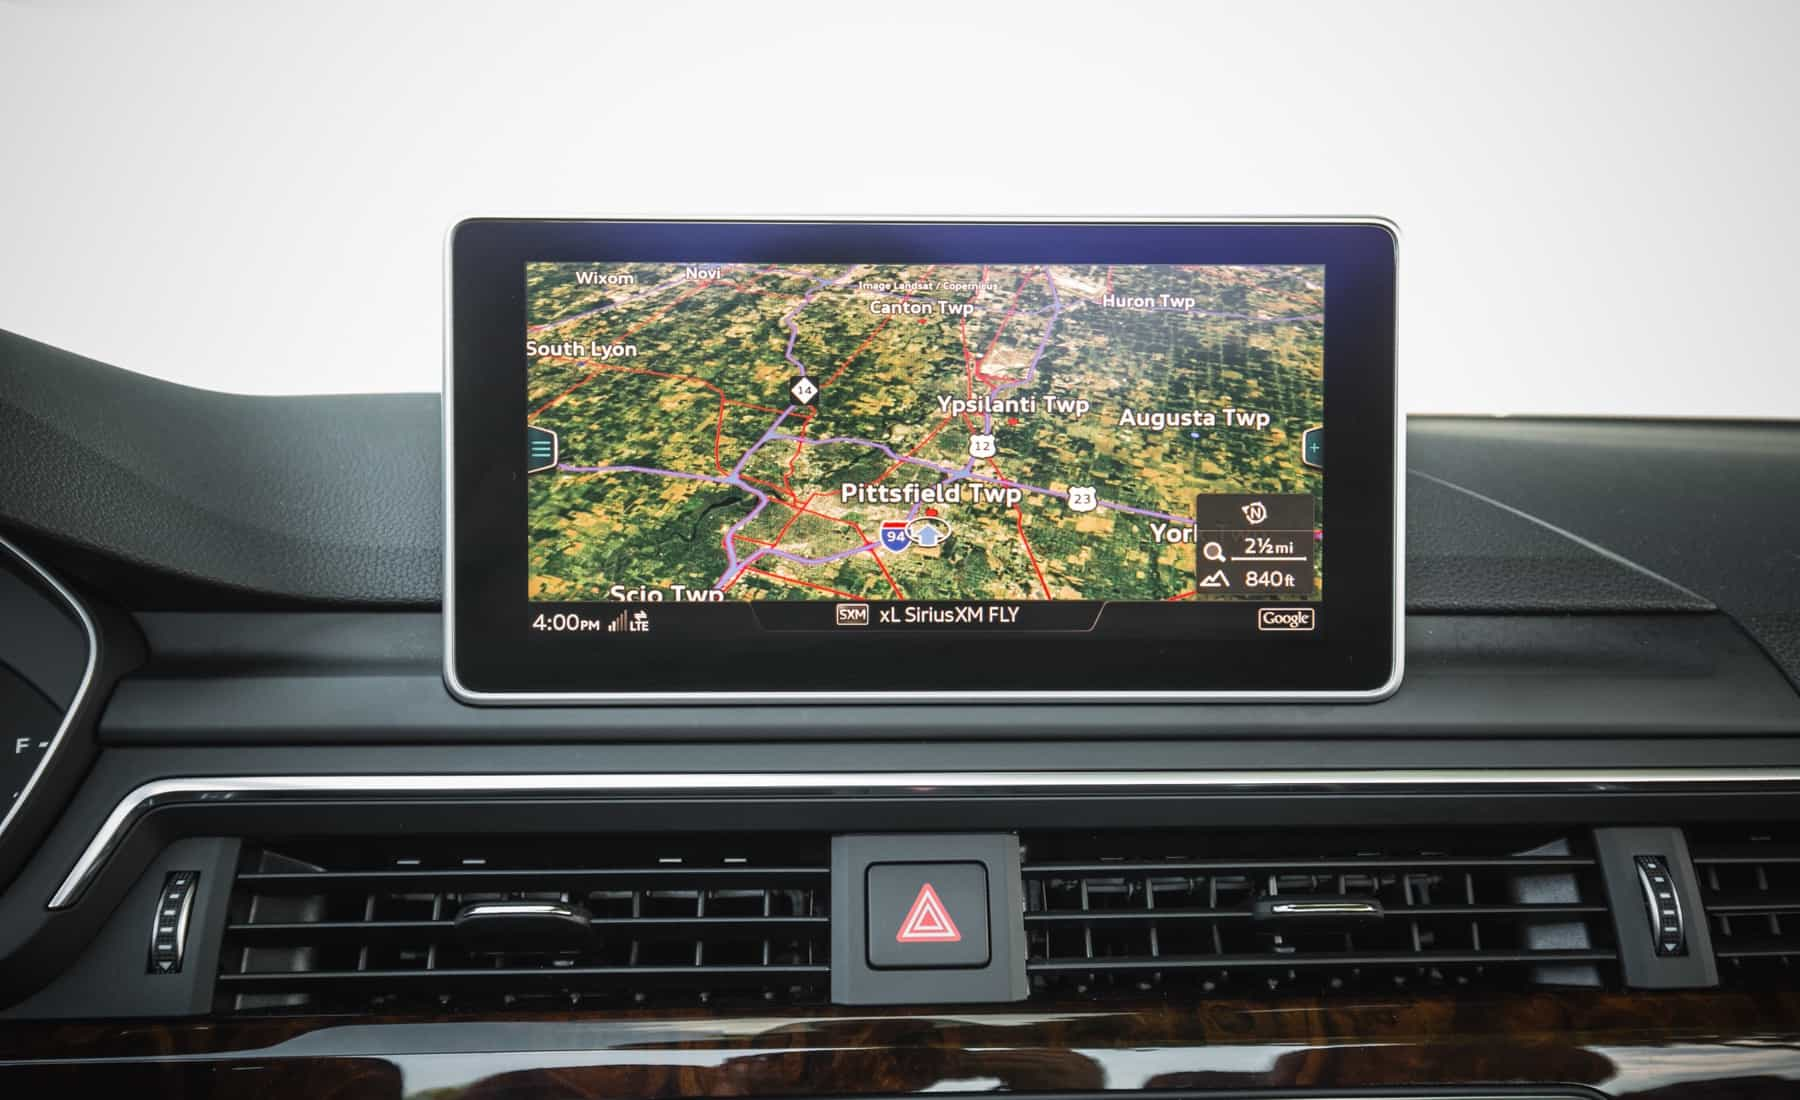 2018 Audi A5 Cabriolet Interior View GPS Navigation Screen (Photo 14 of 45)